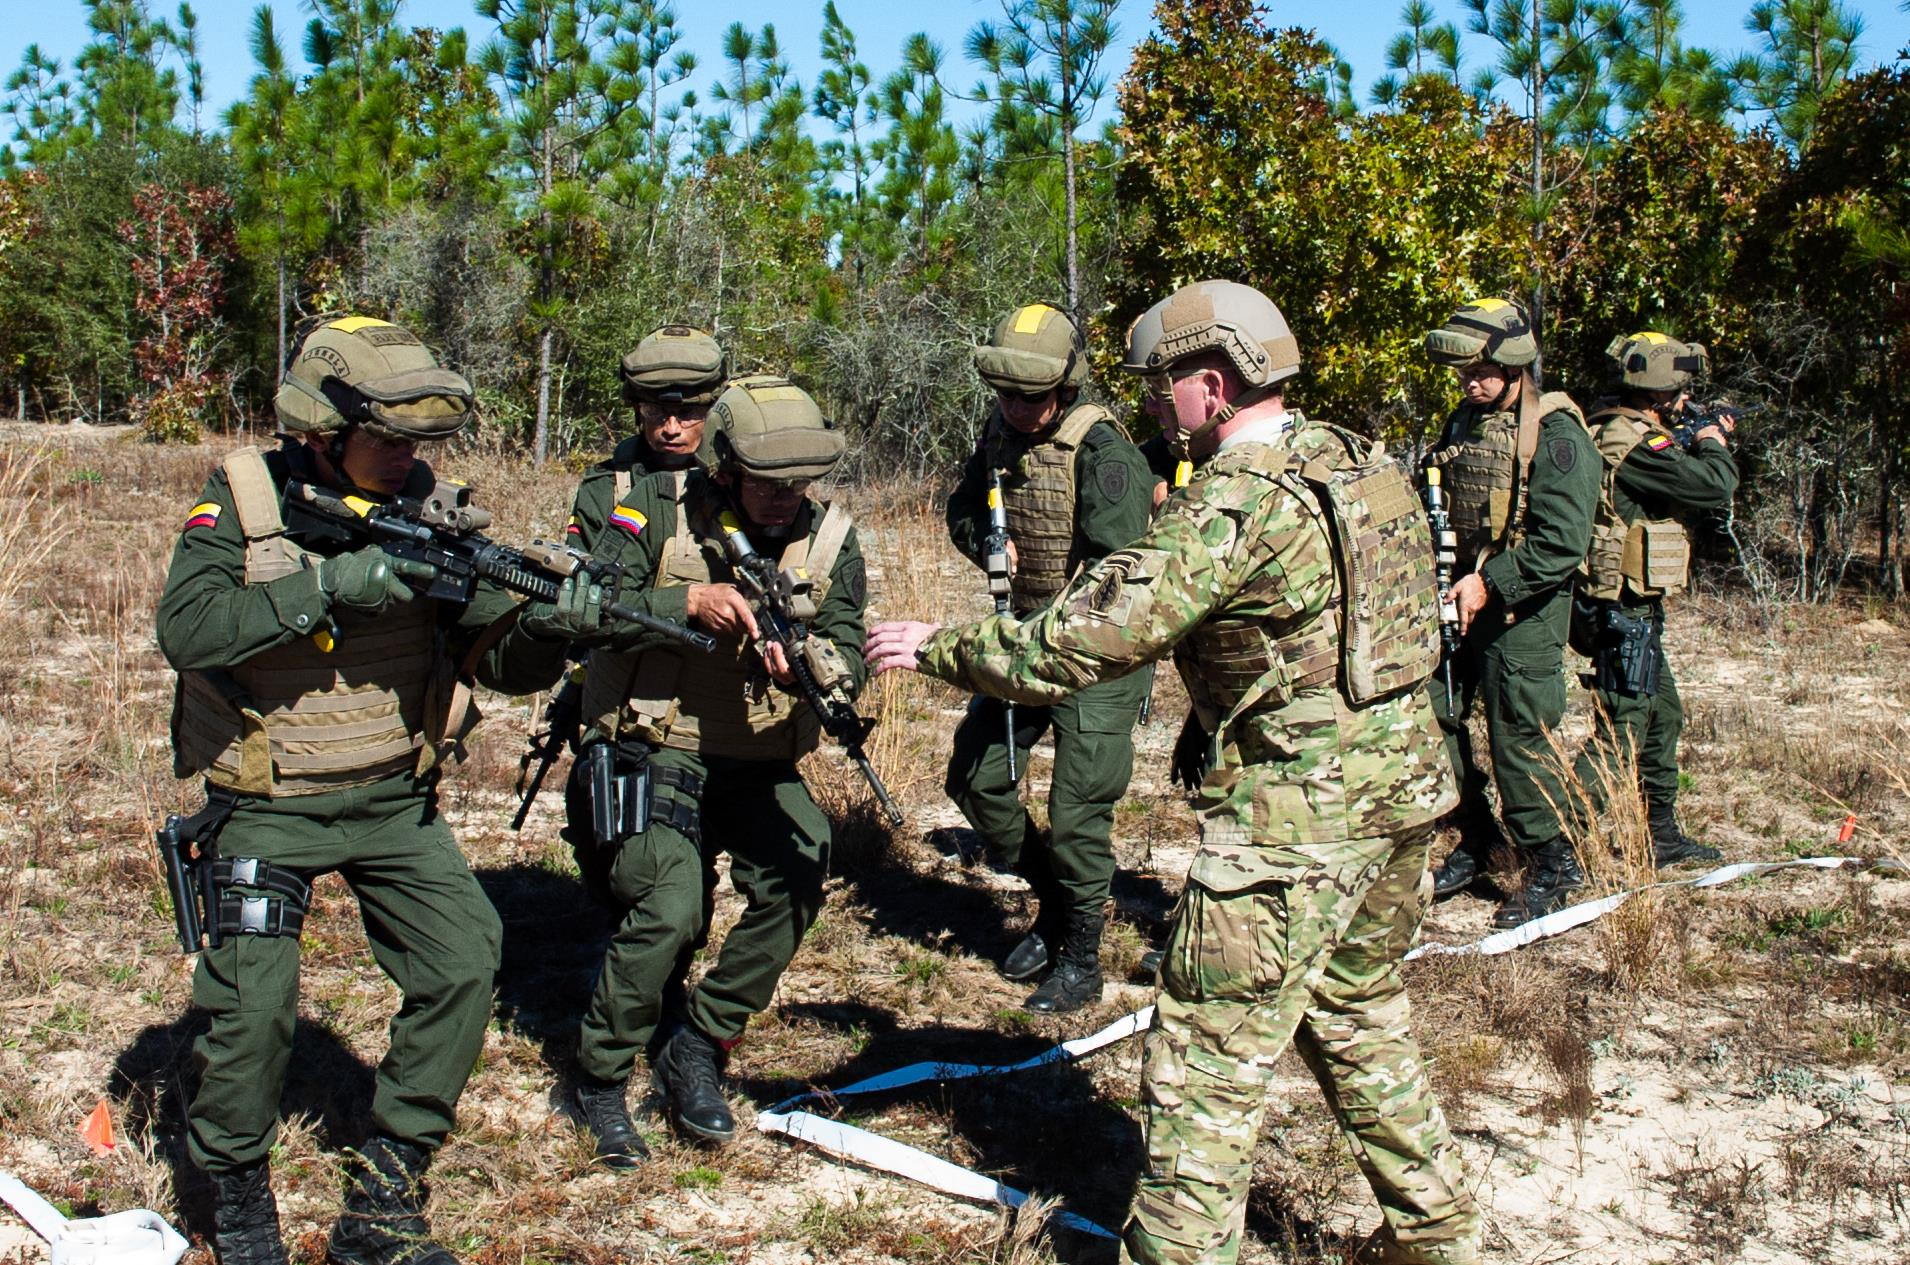 dating an army green beret What was your experience in dating military men  my friend was dating a green beret  the army counselor basically told him that he was fine and that there was .